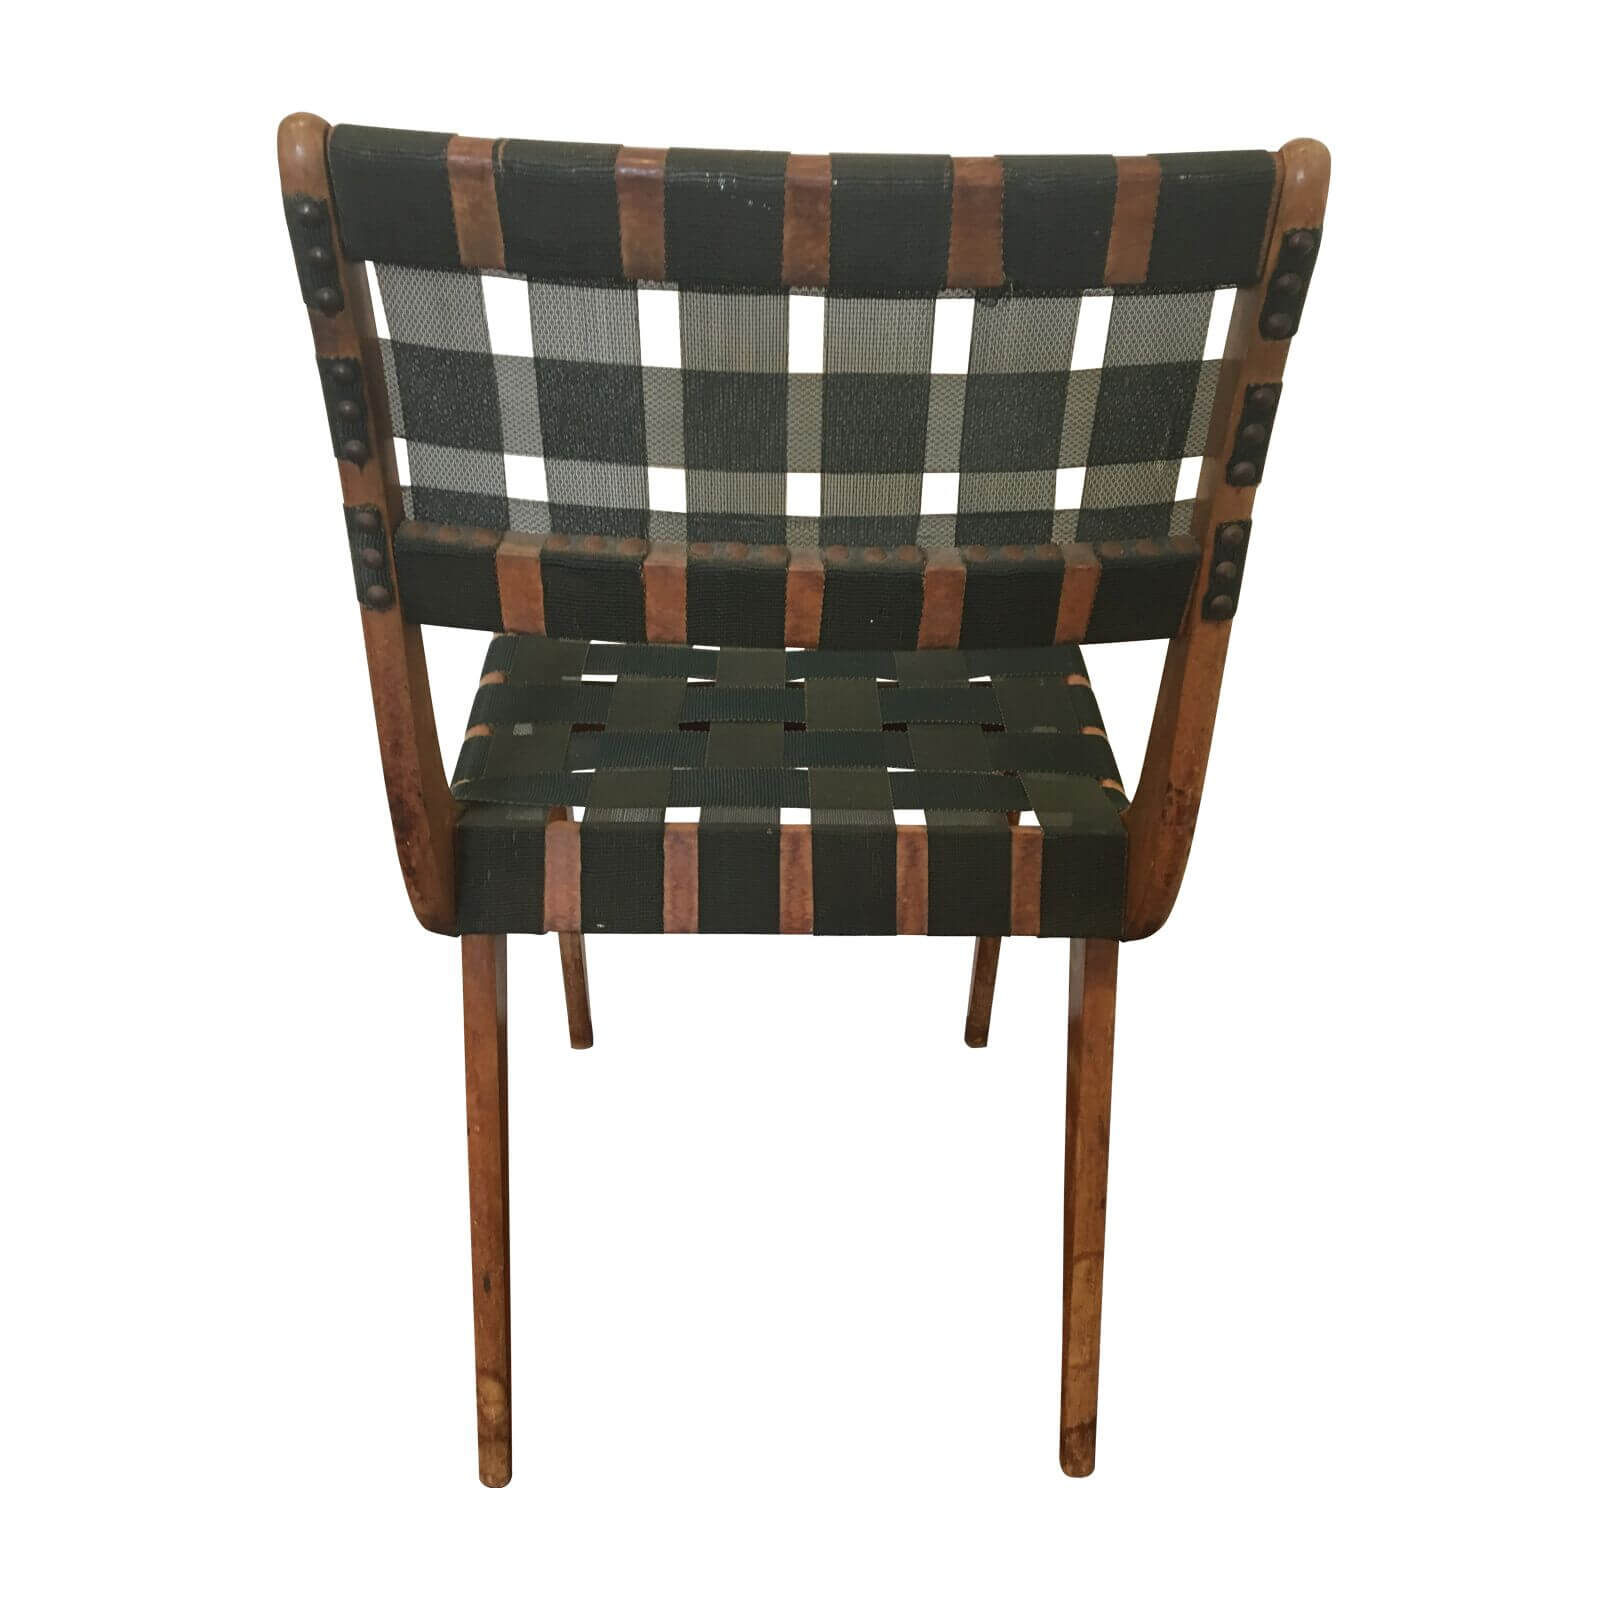 Two-Design-Lovers-Douglas-Snelling-Dining-Chair-Back